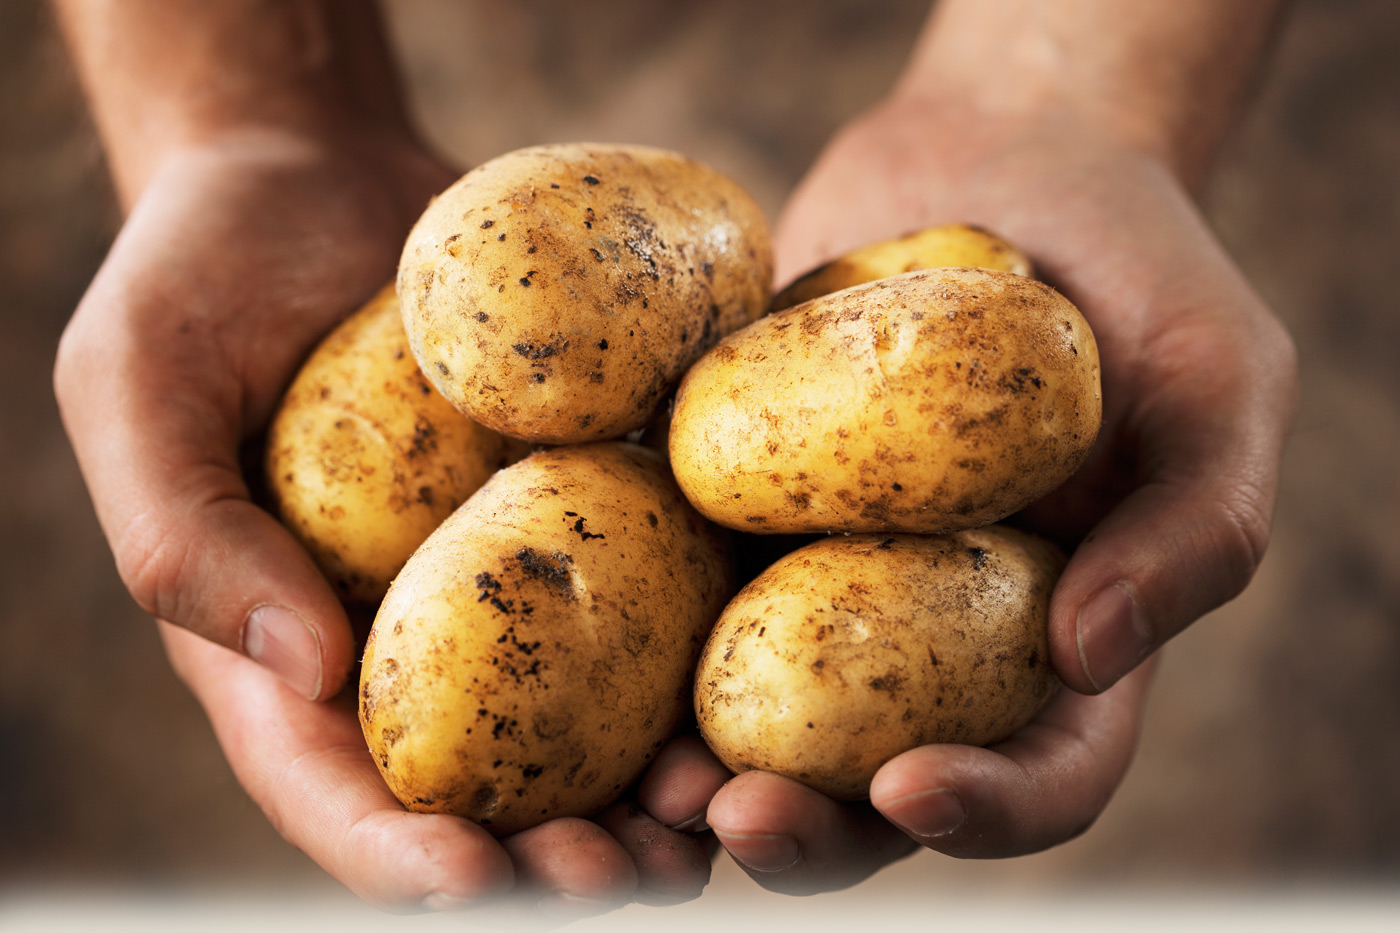 Person holding potatoes in their hands.